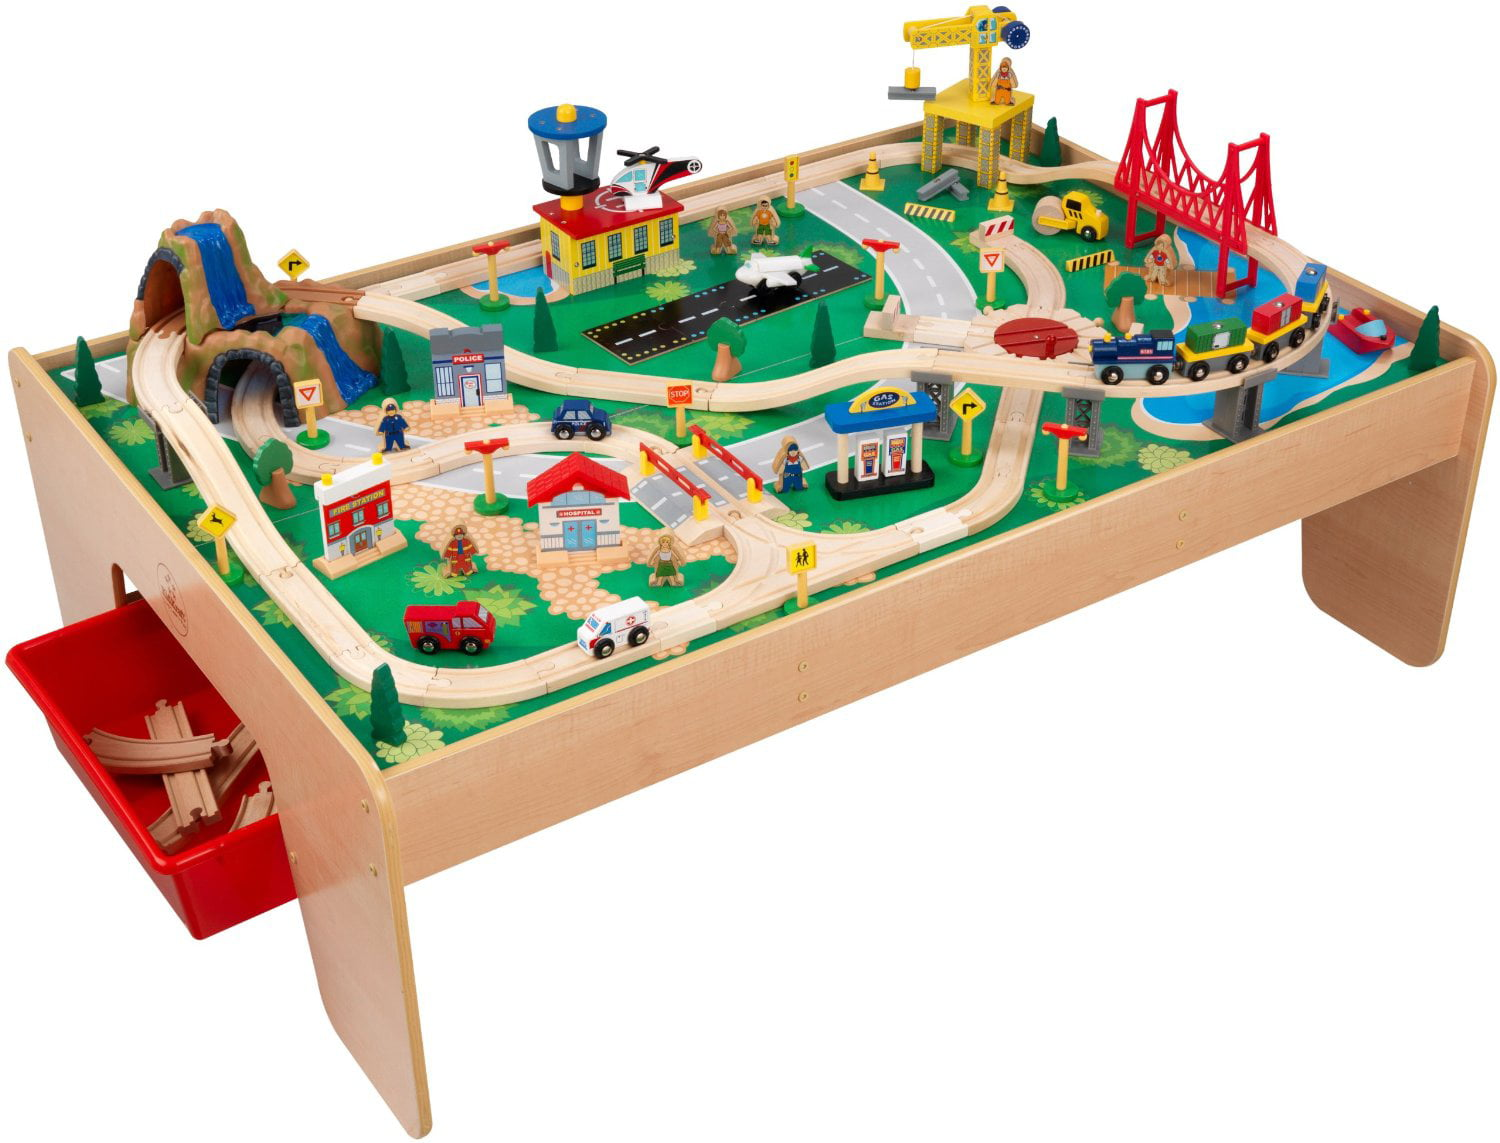 sc 1 st  Walmart.com & KidKraft Waterfall Mountain Train Set and Table - Walmart.com